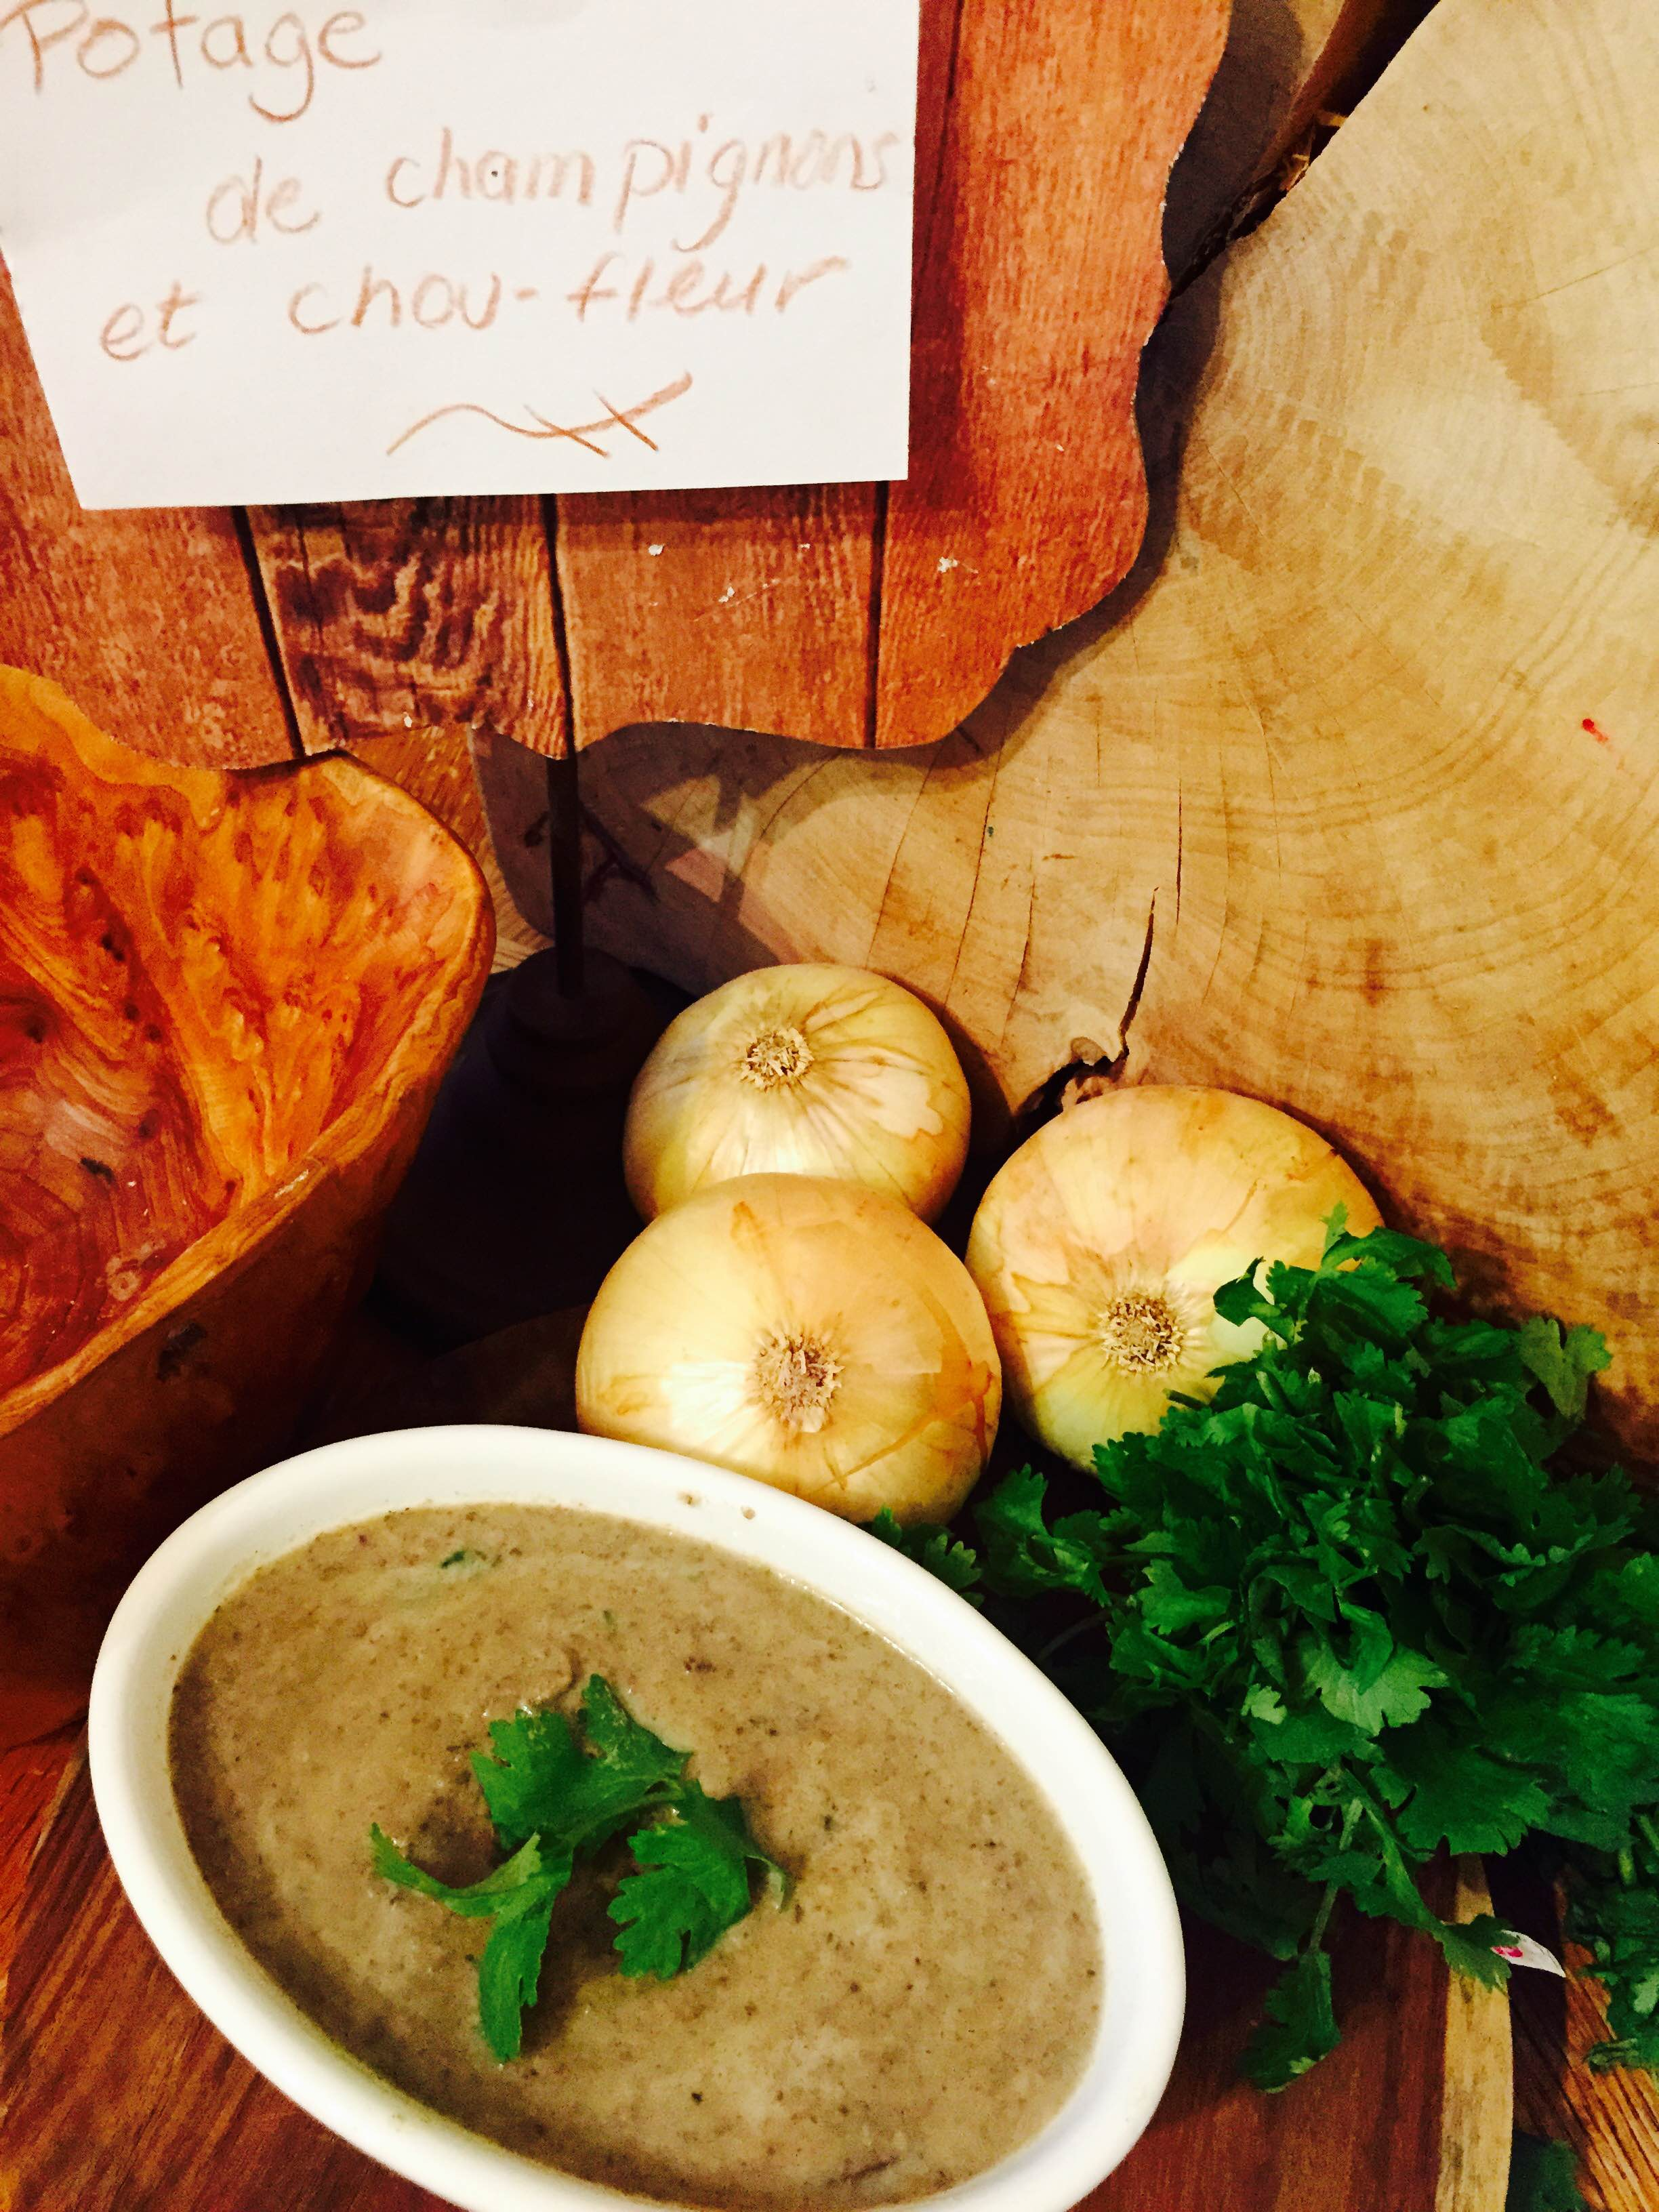 recettes sant nutrisimple potage champignons et chou fleur. Black Bedroom Furniture Sets. Home Design Ideas